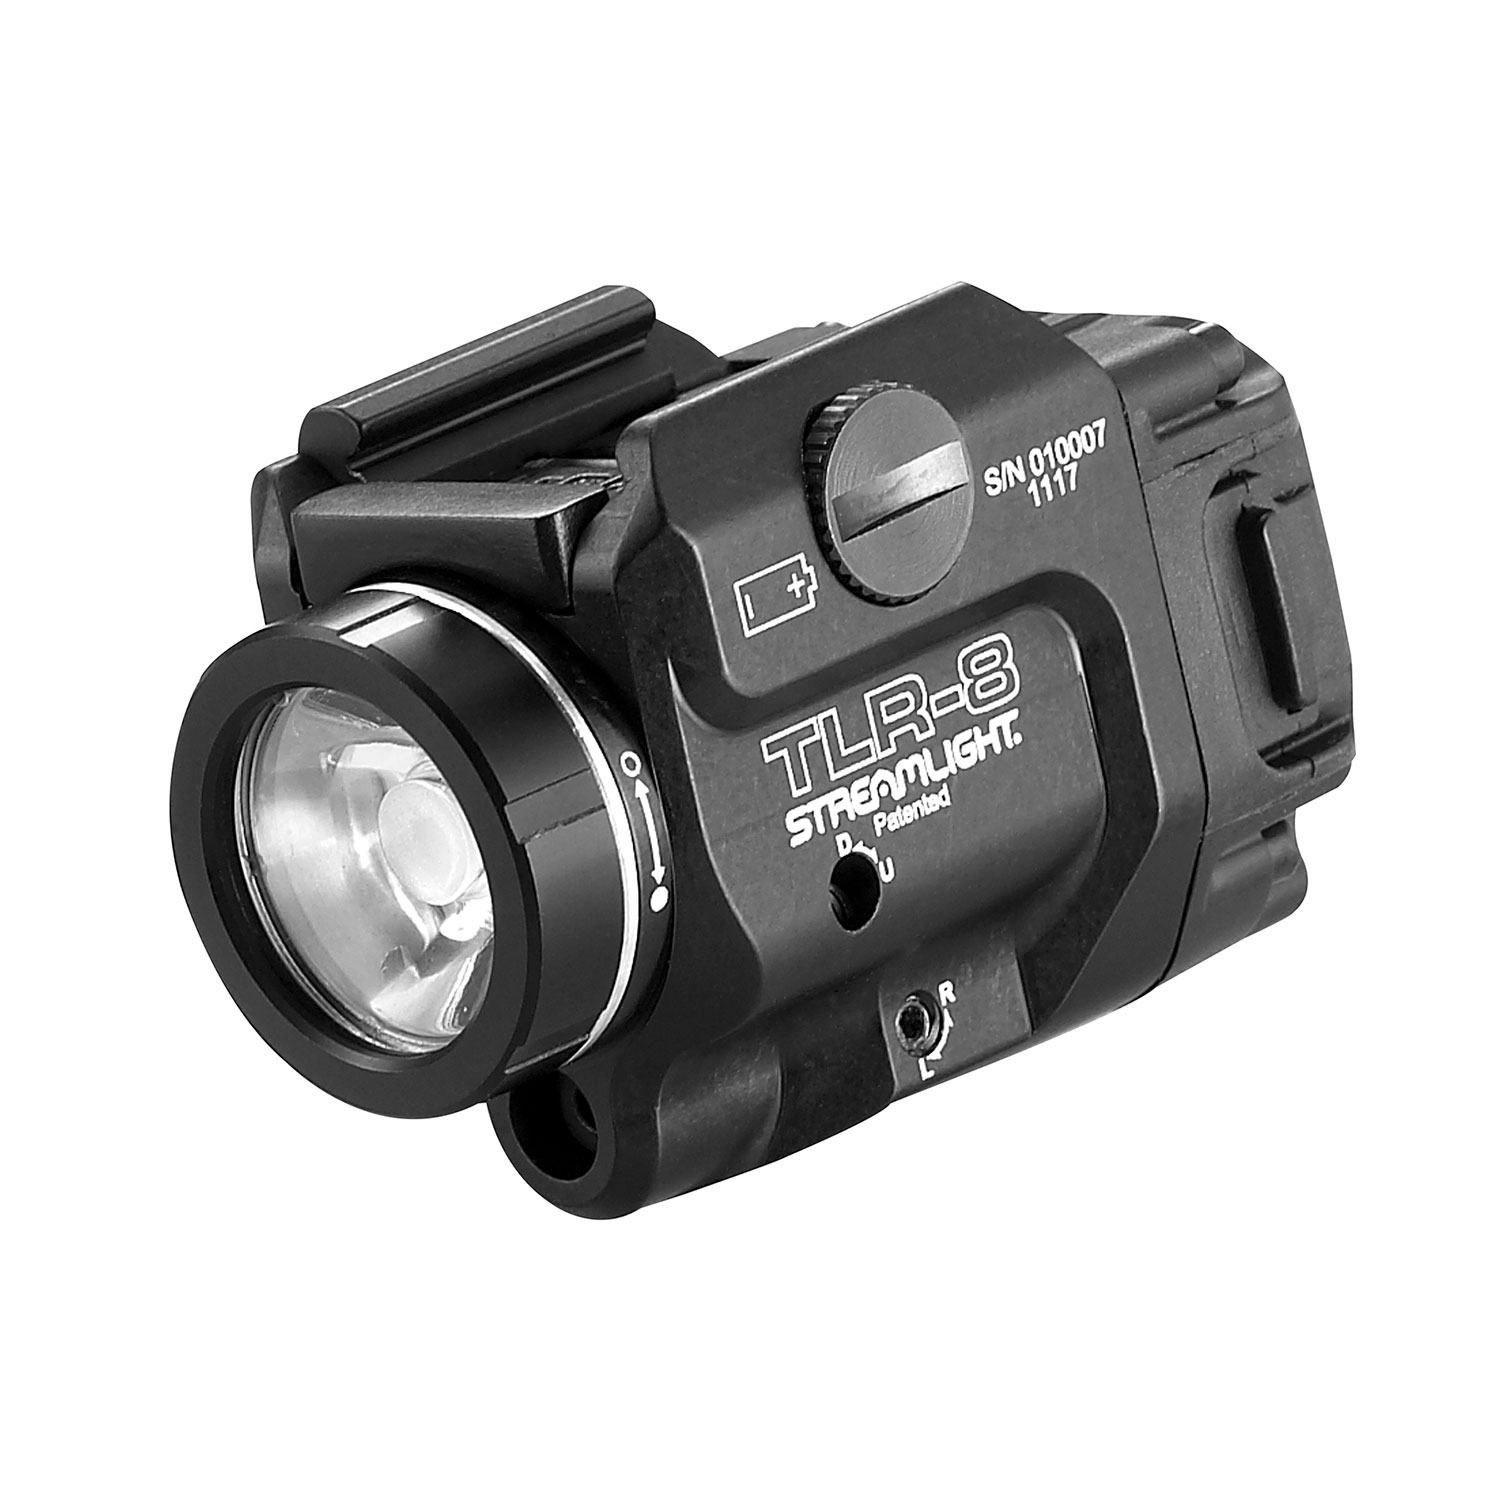 Streamlight TLR-8 Weapon Light with Laser Sight